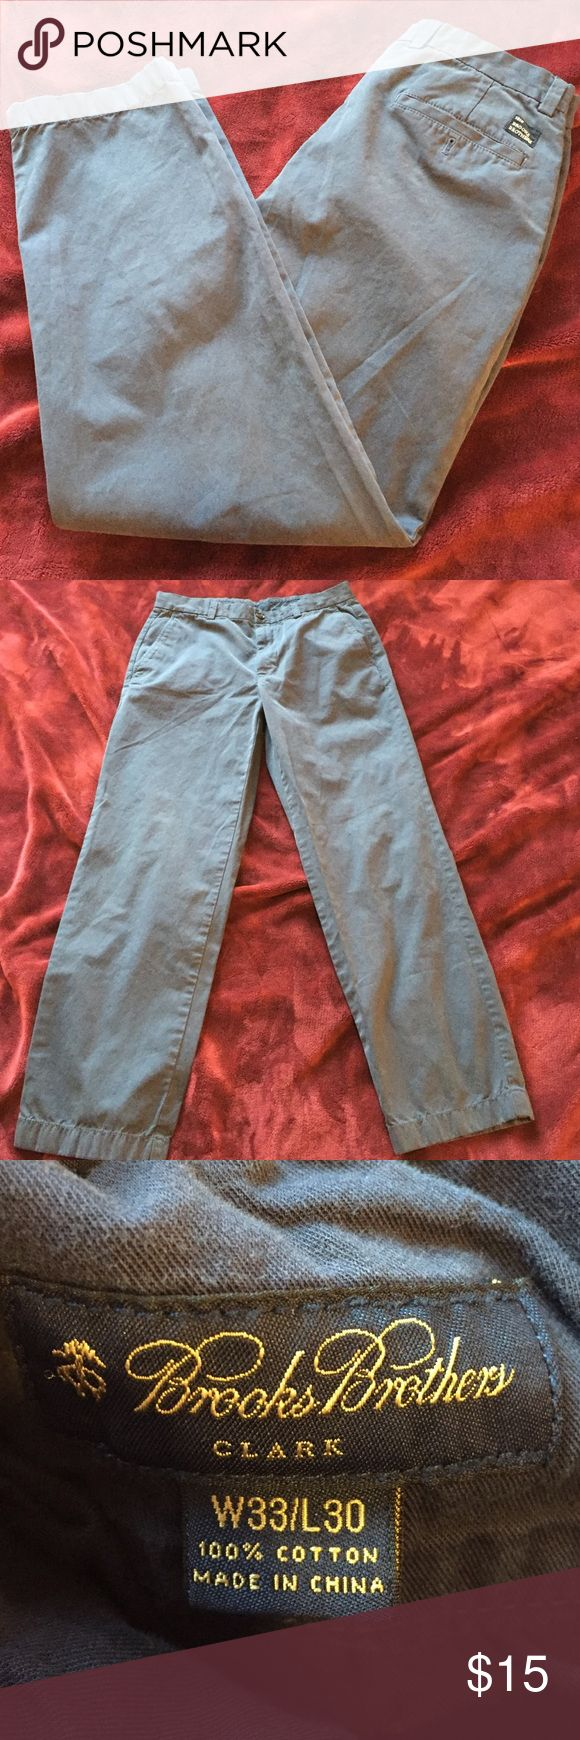 Brooks brothers Clark cut navy blue chinos 30 inch inseam, navy blue in good condition Brooks Brothers Pants Chinos & Khakis